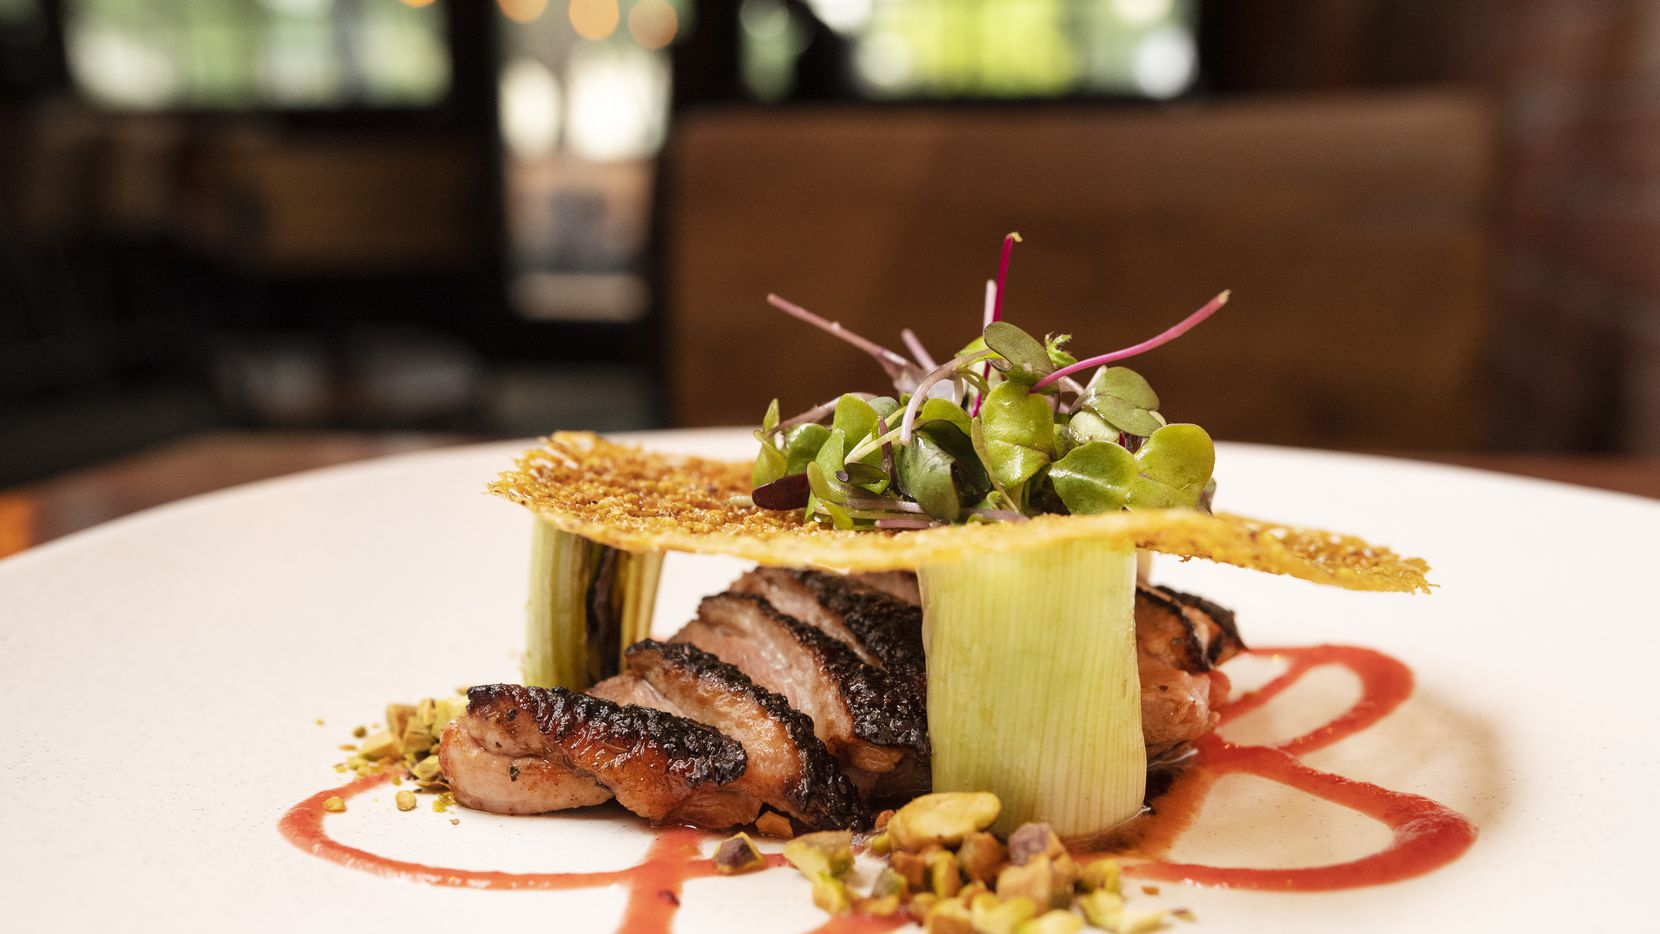 Rye in Dallas reminds us how fun food can be. Here's Release the Quack-en: citrus brined duck, charred leeks, strawberry boshi, pomegranate vinaigrette and pistachio.